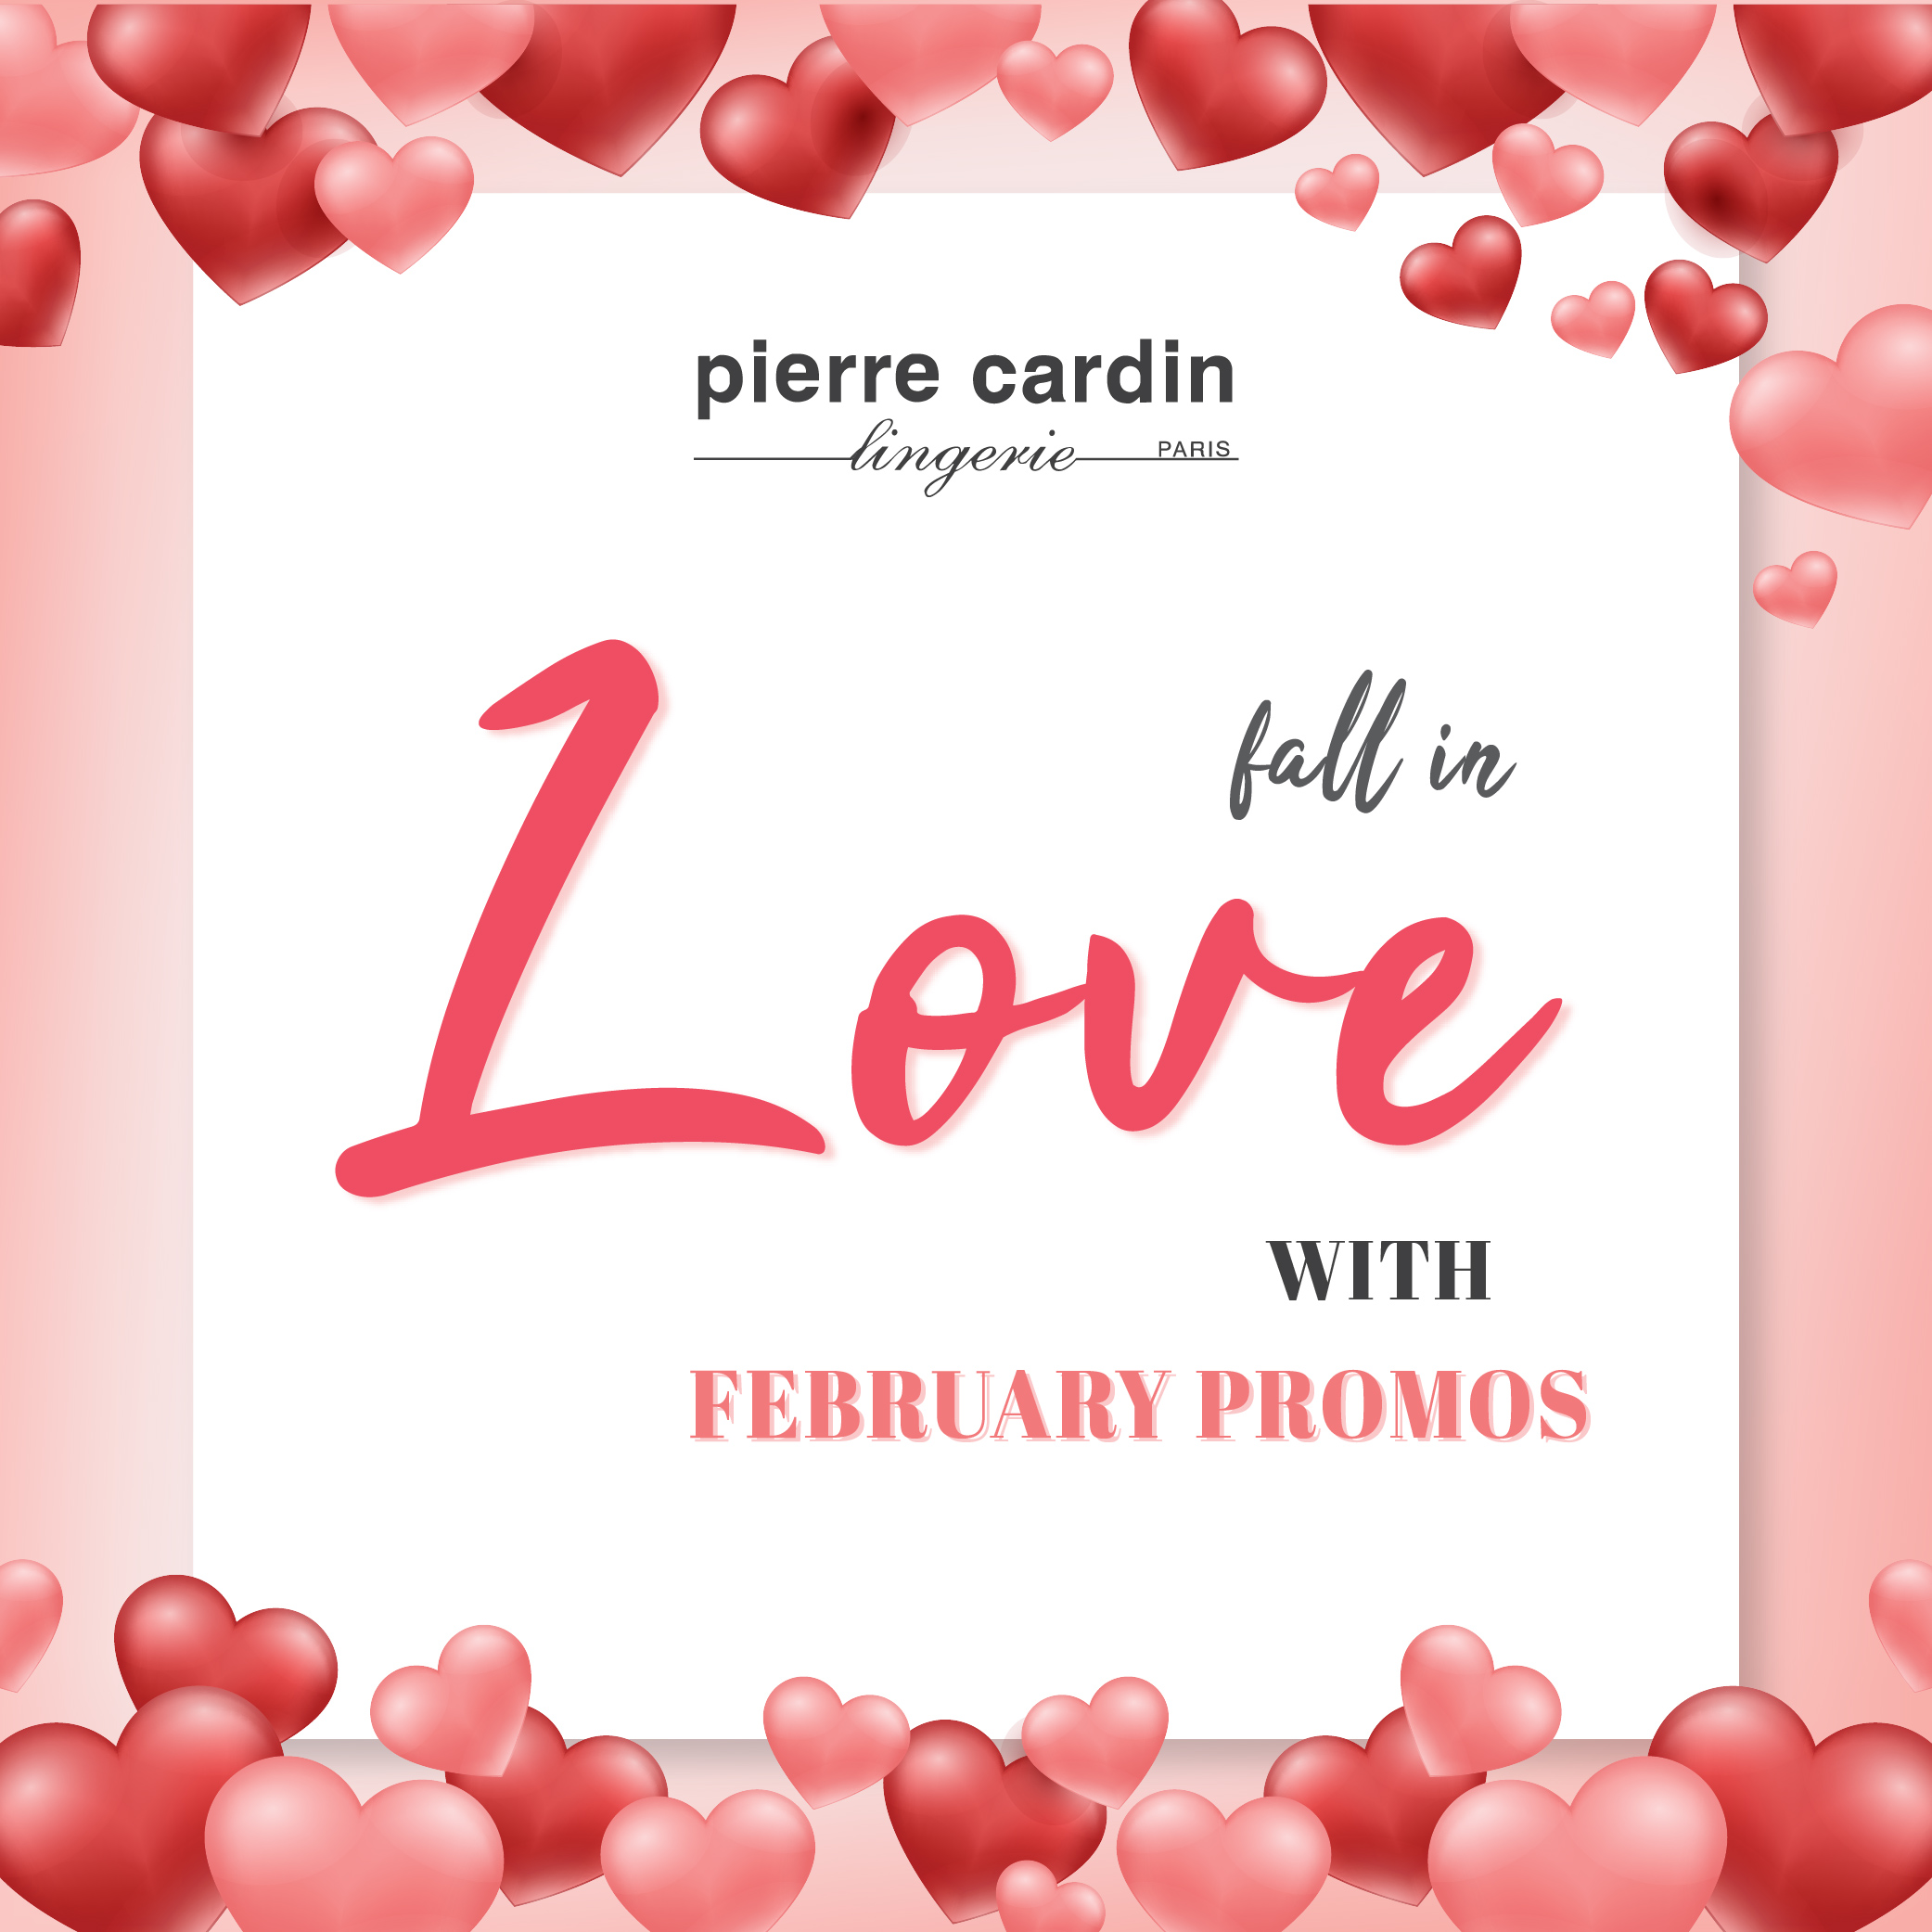 Pierre Cardin Lingerie & Energized Feb Promotion